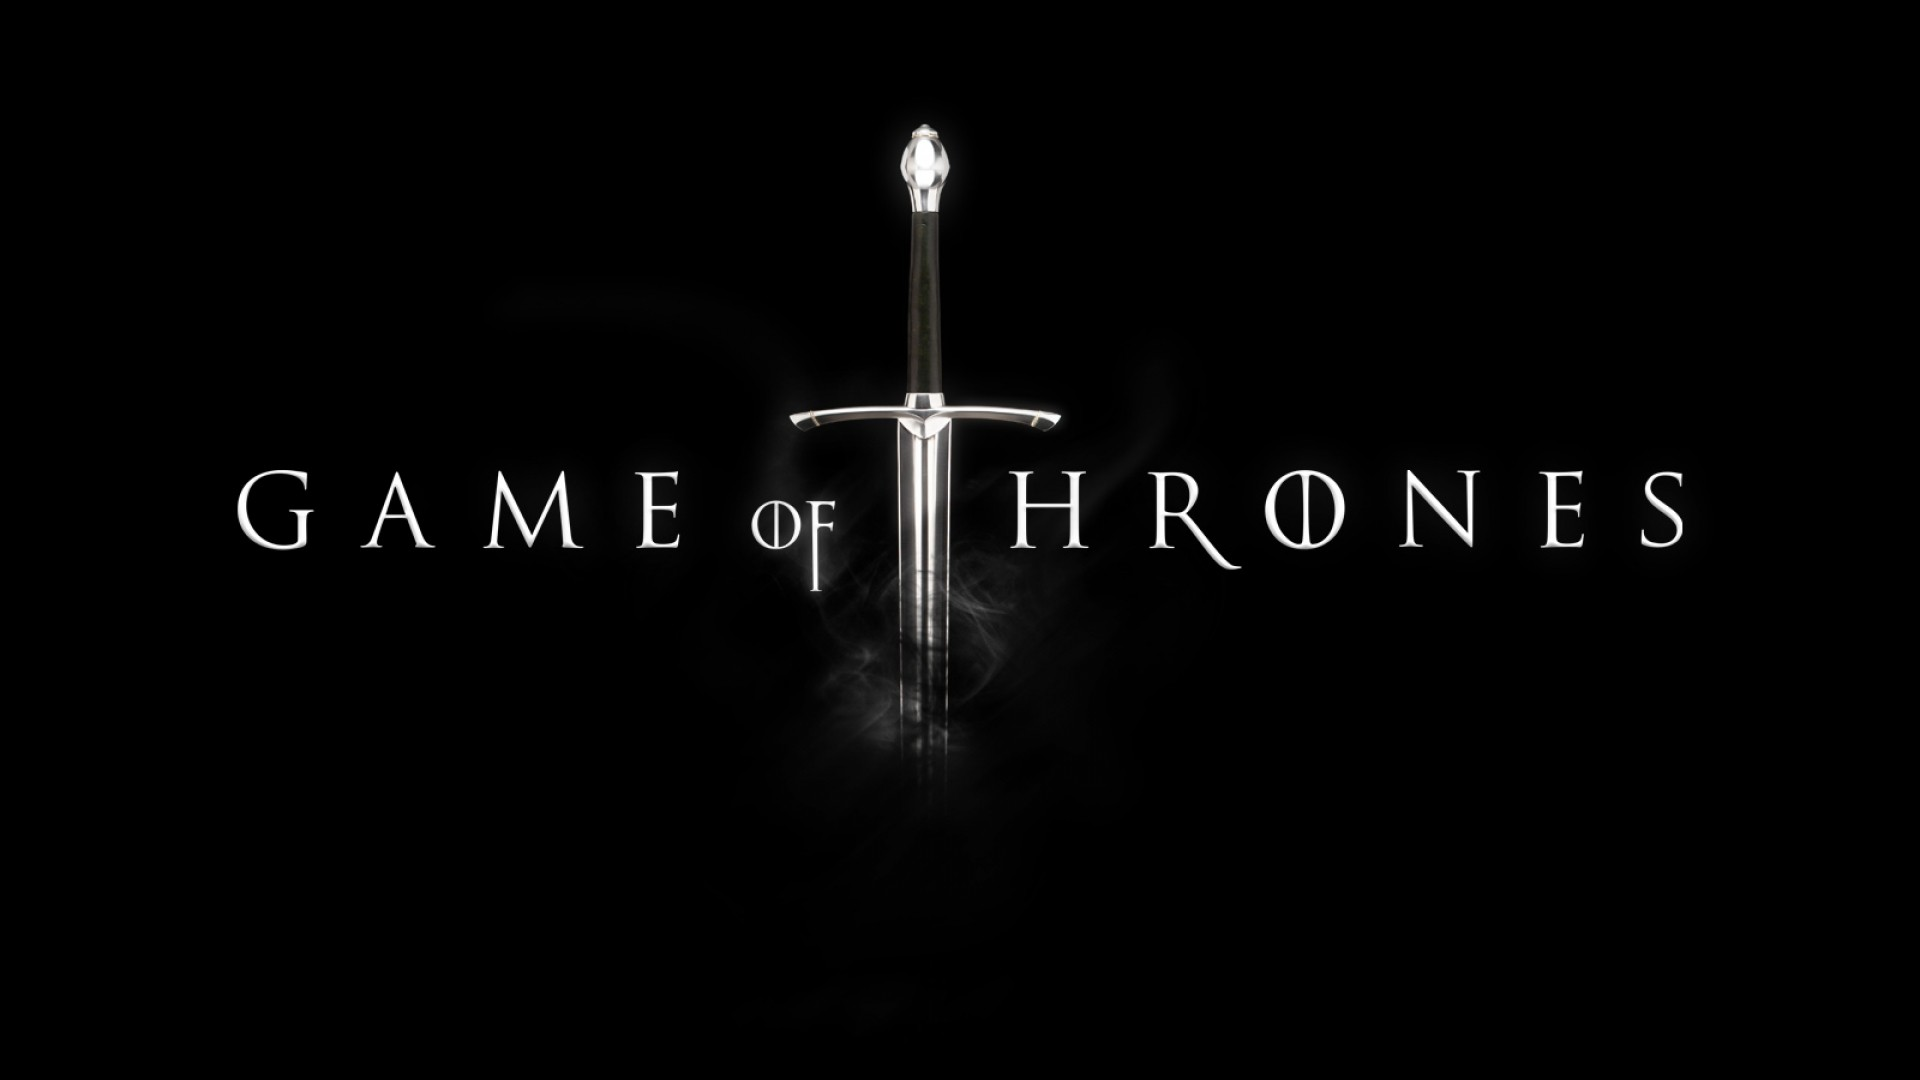 A Game of Thrones HD Text